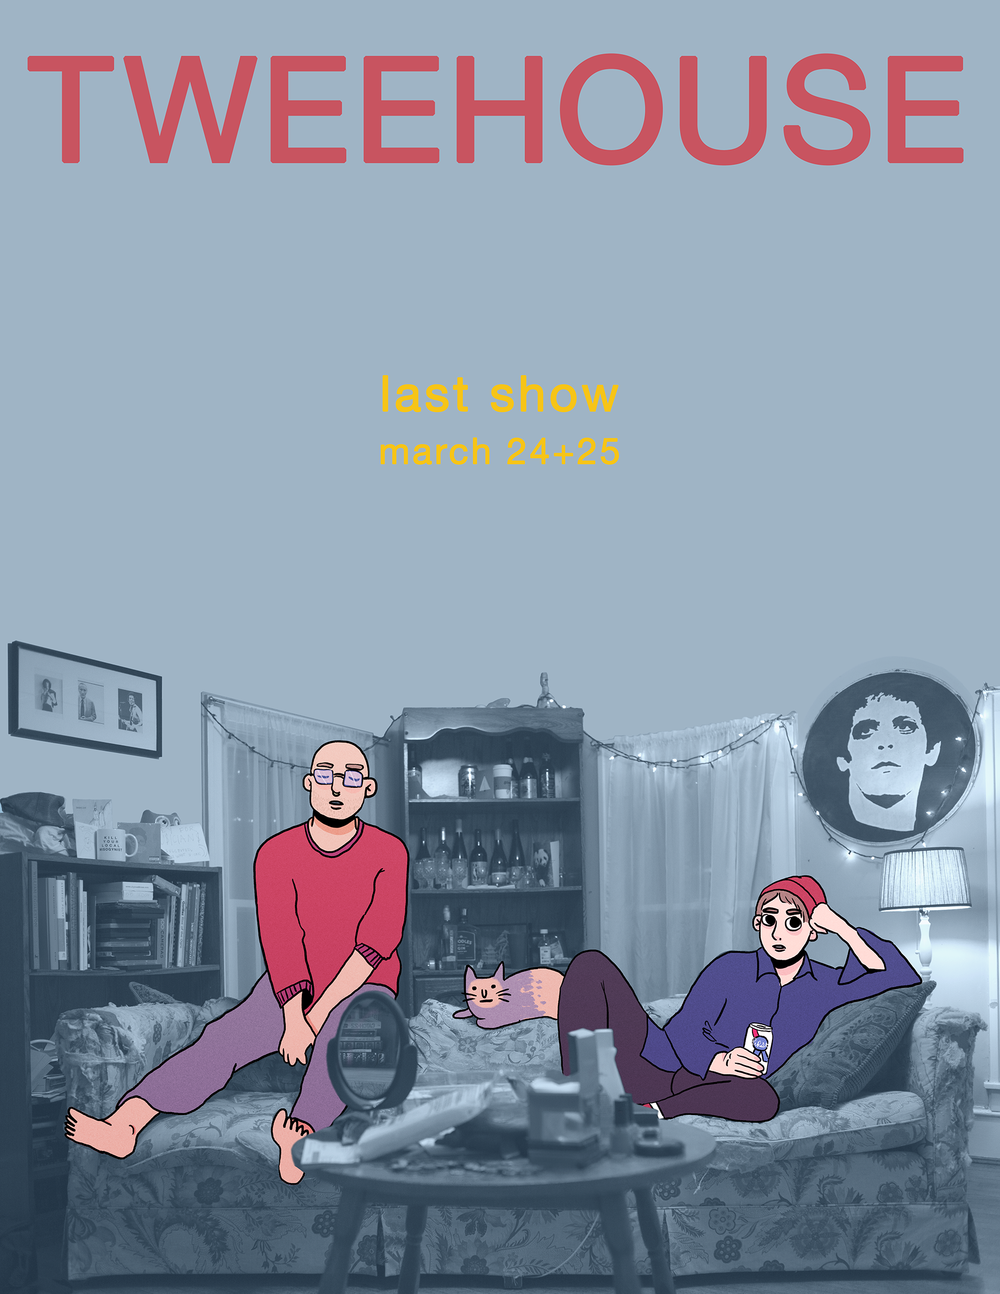 Collaboration with illustration by Francesca Hodge. Poster for Tweehouse. 2017.